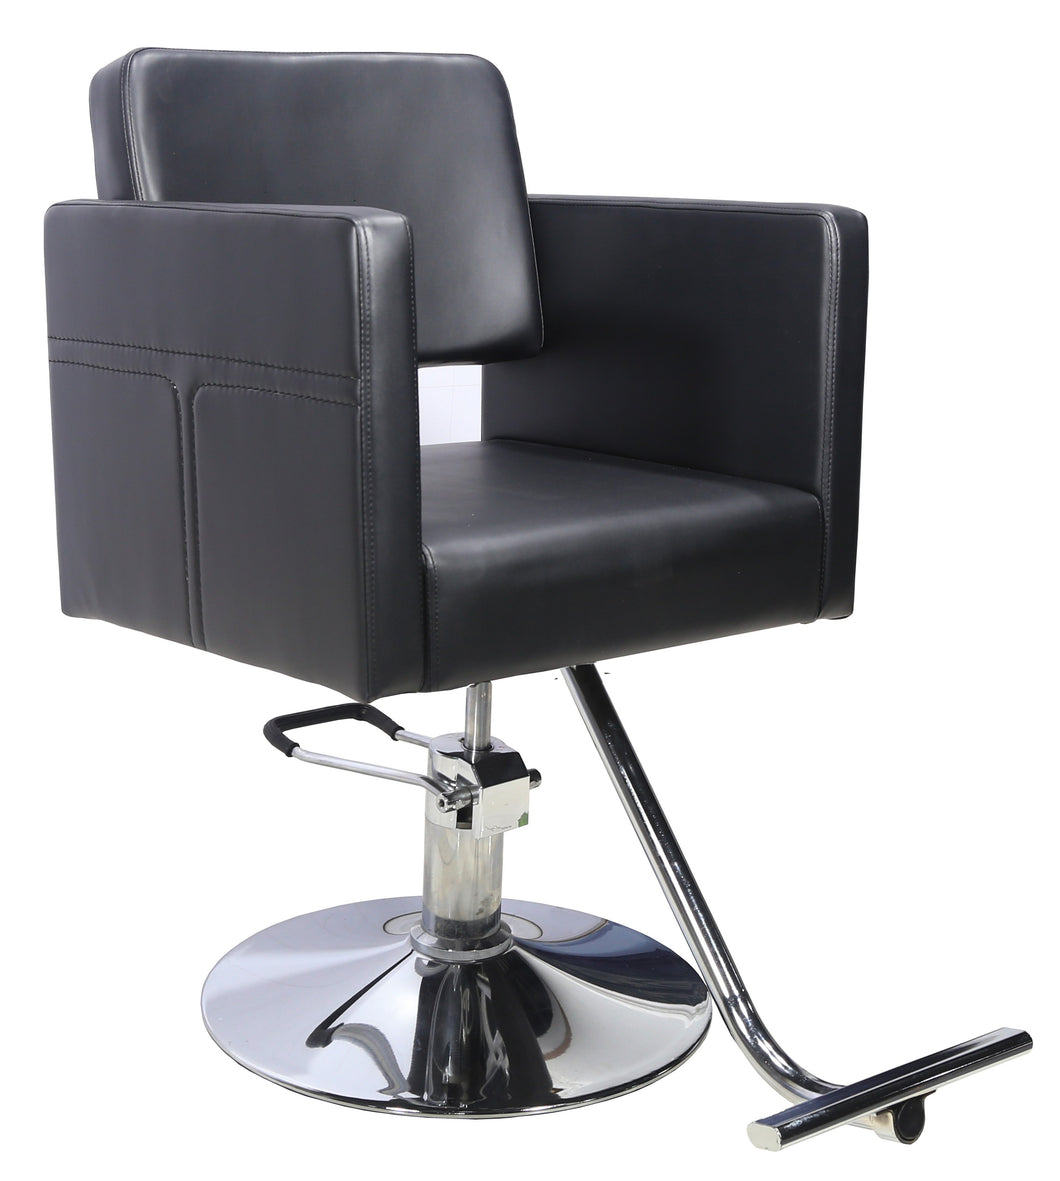 Model-647 Styling Chair